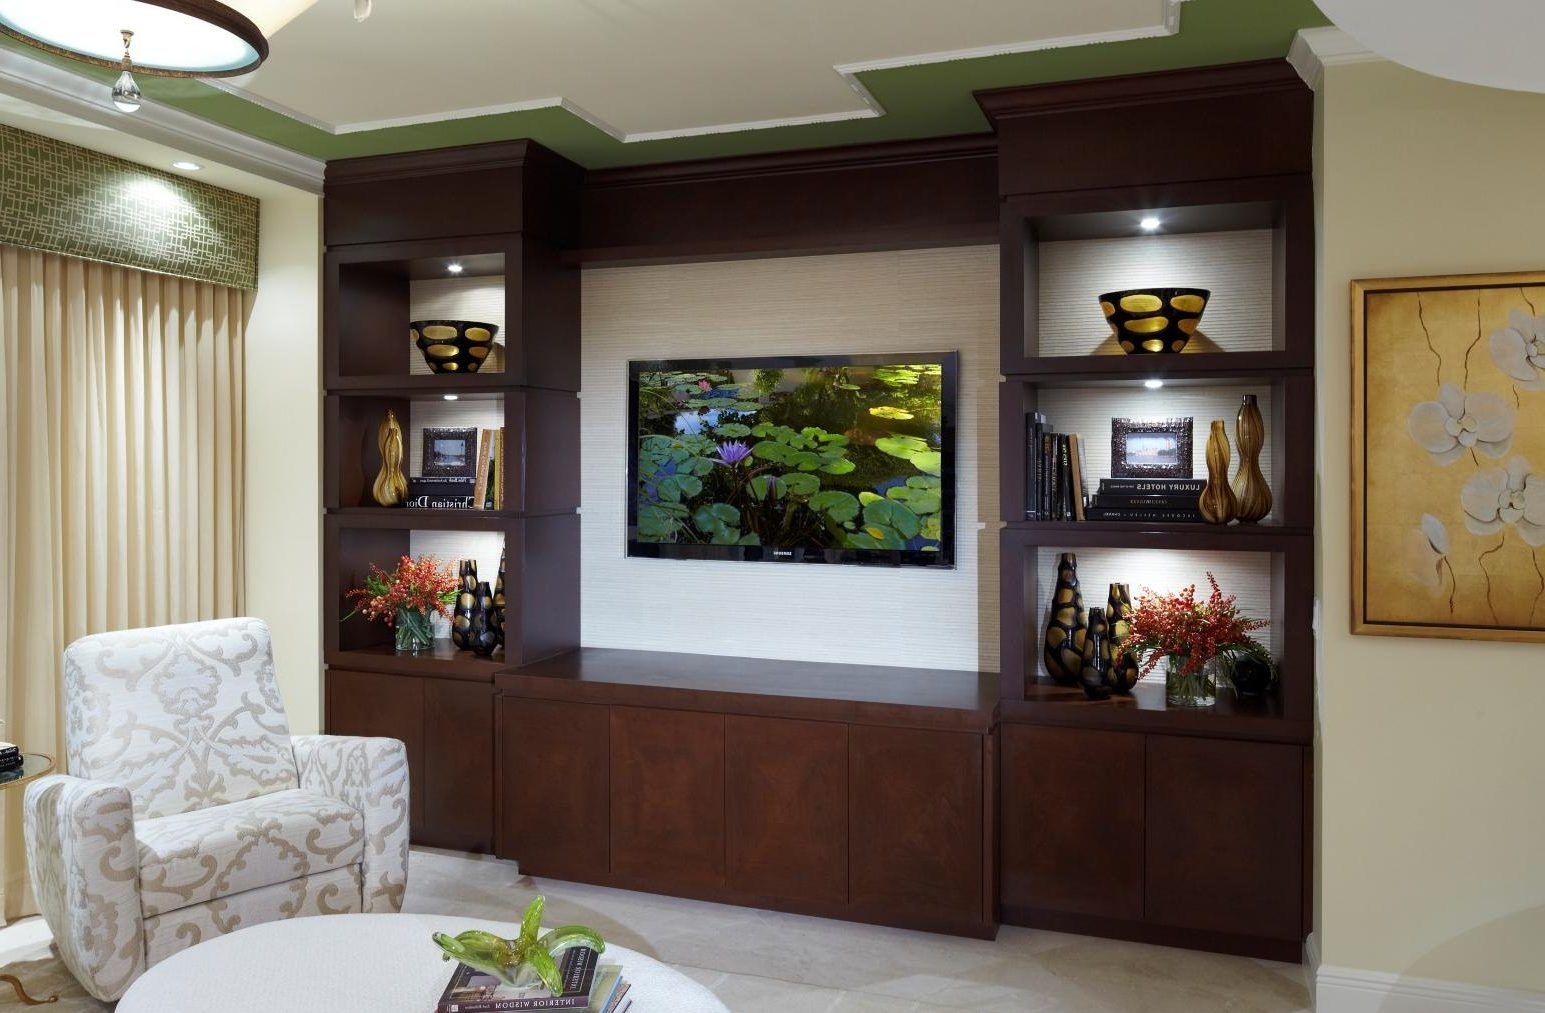 15 ideas of fitted wall units living room for 10 by 15 living room